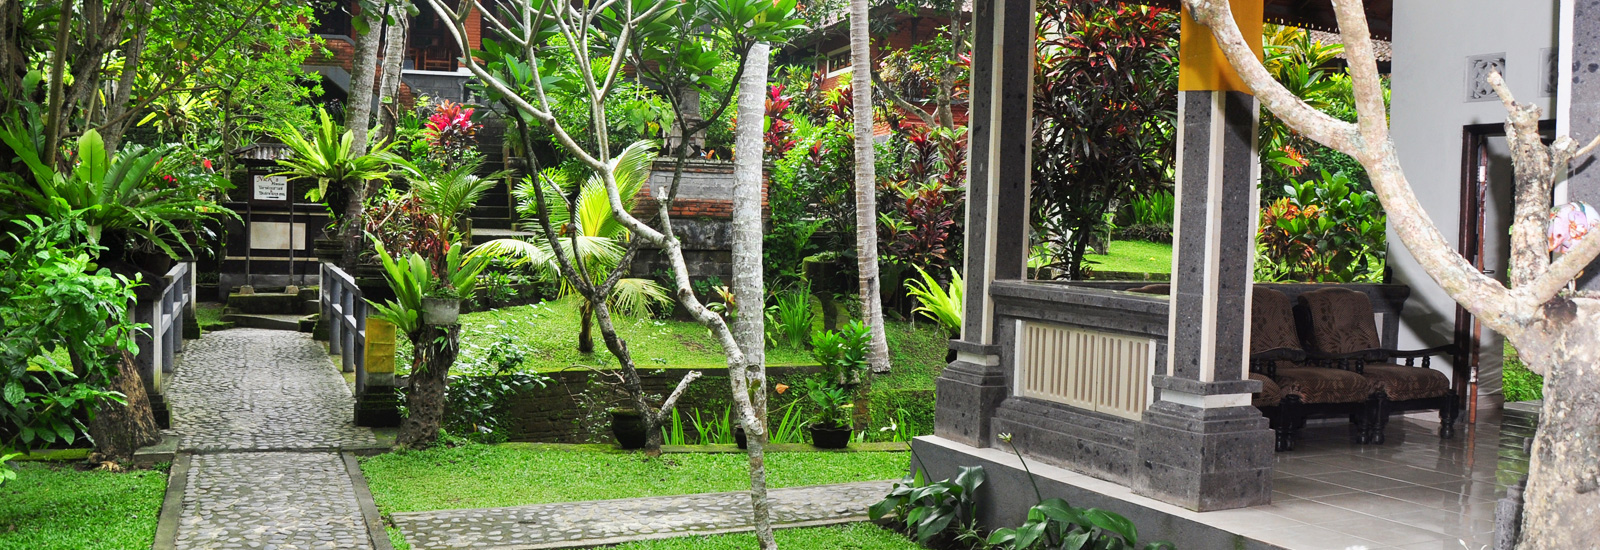 Nick's Pension Hotel Bali